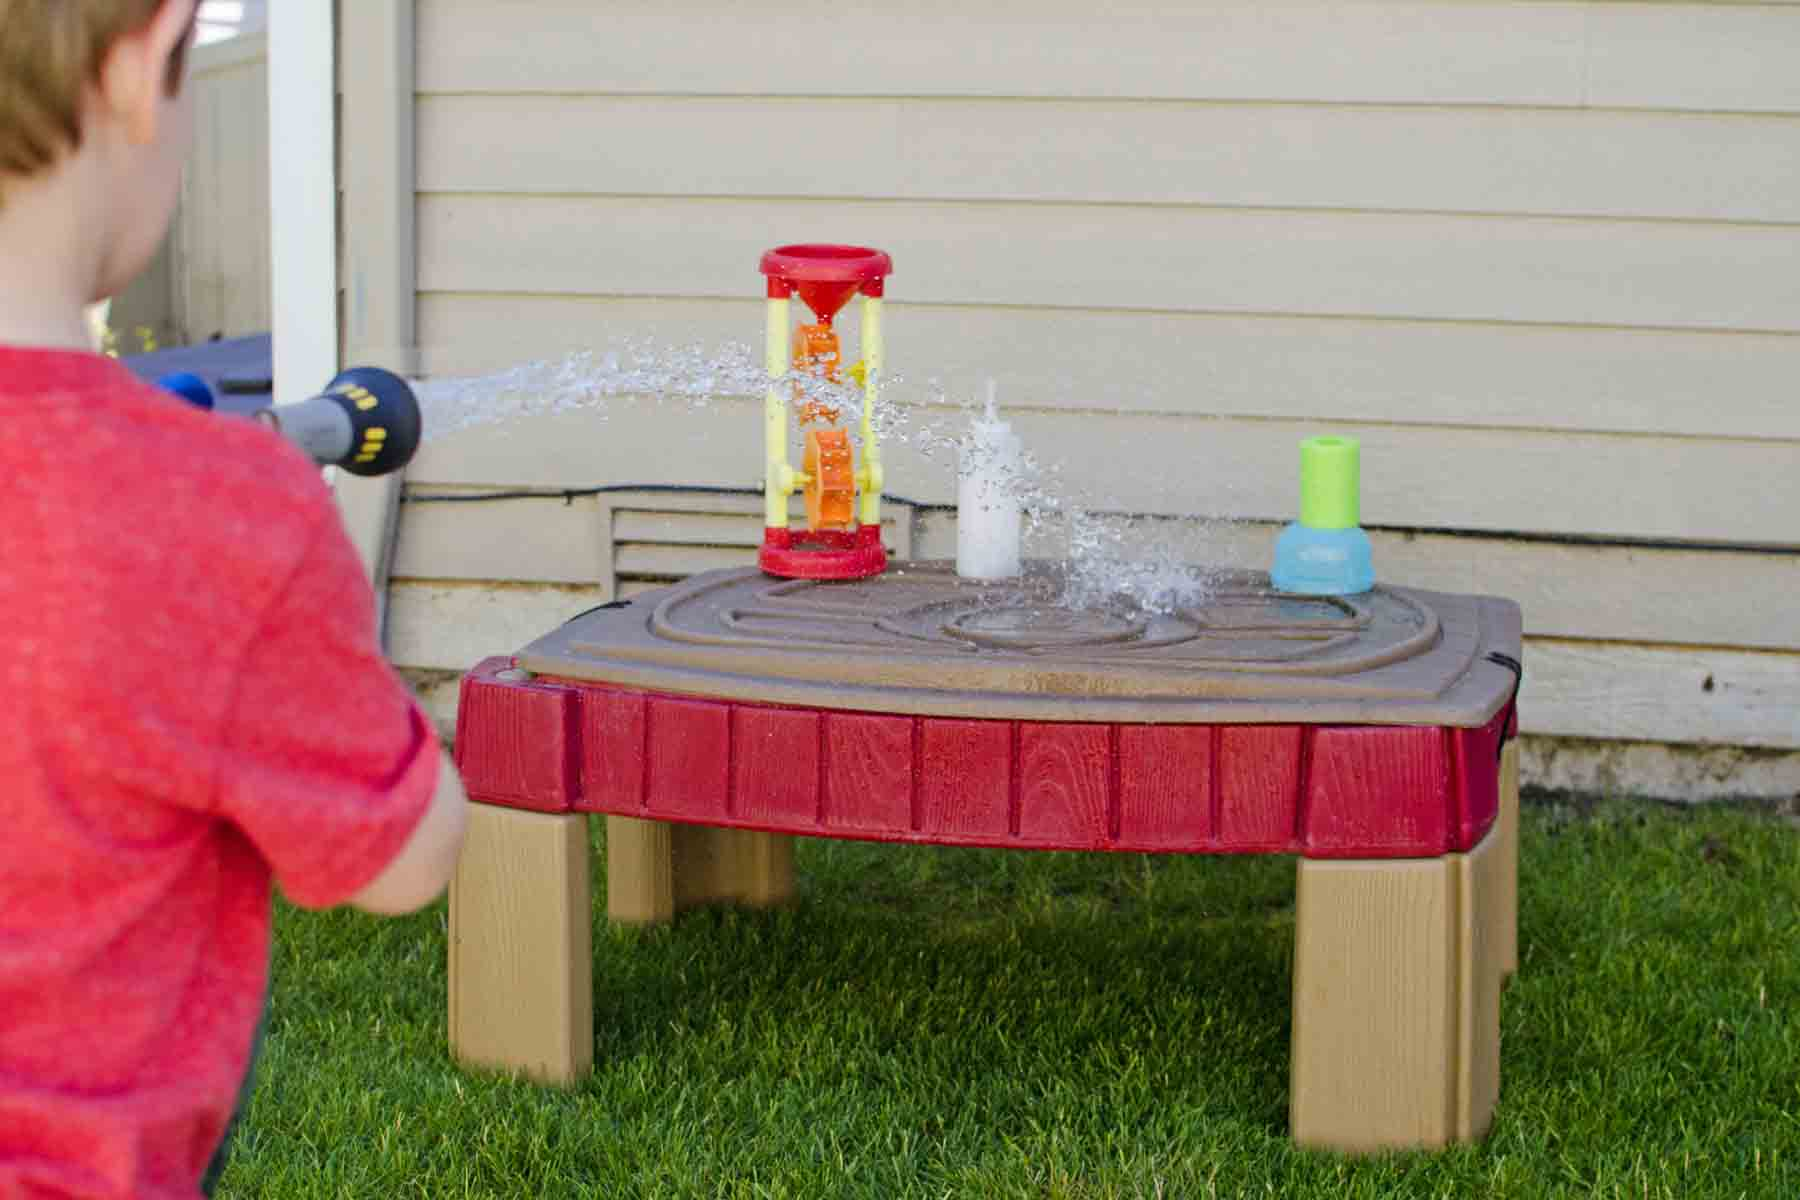 HOSE TARGETS: A simple backyard activity that's just silly fun; a fine motor skills activity for toddlers and preschoolers